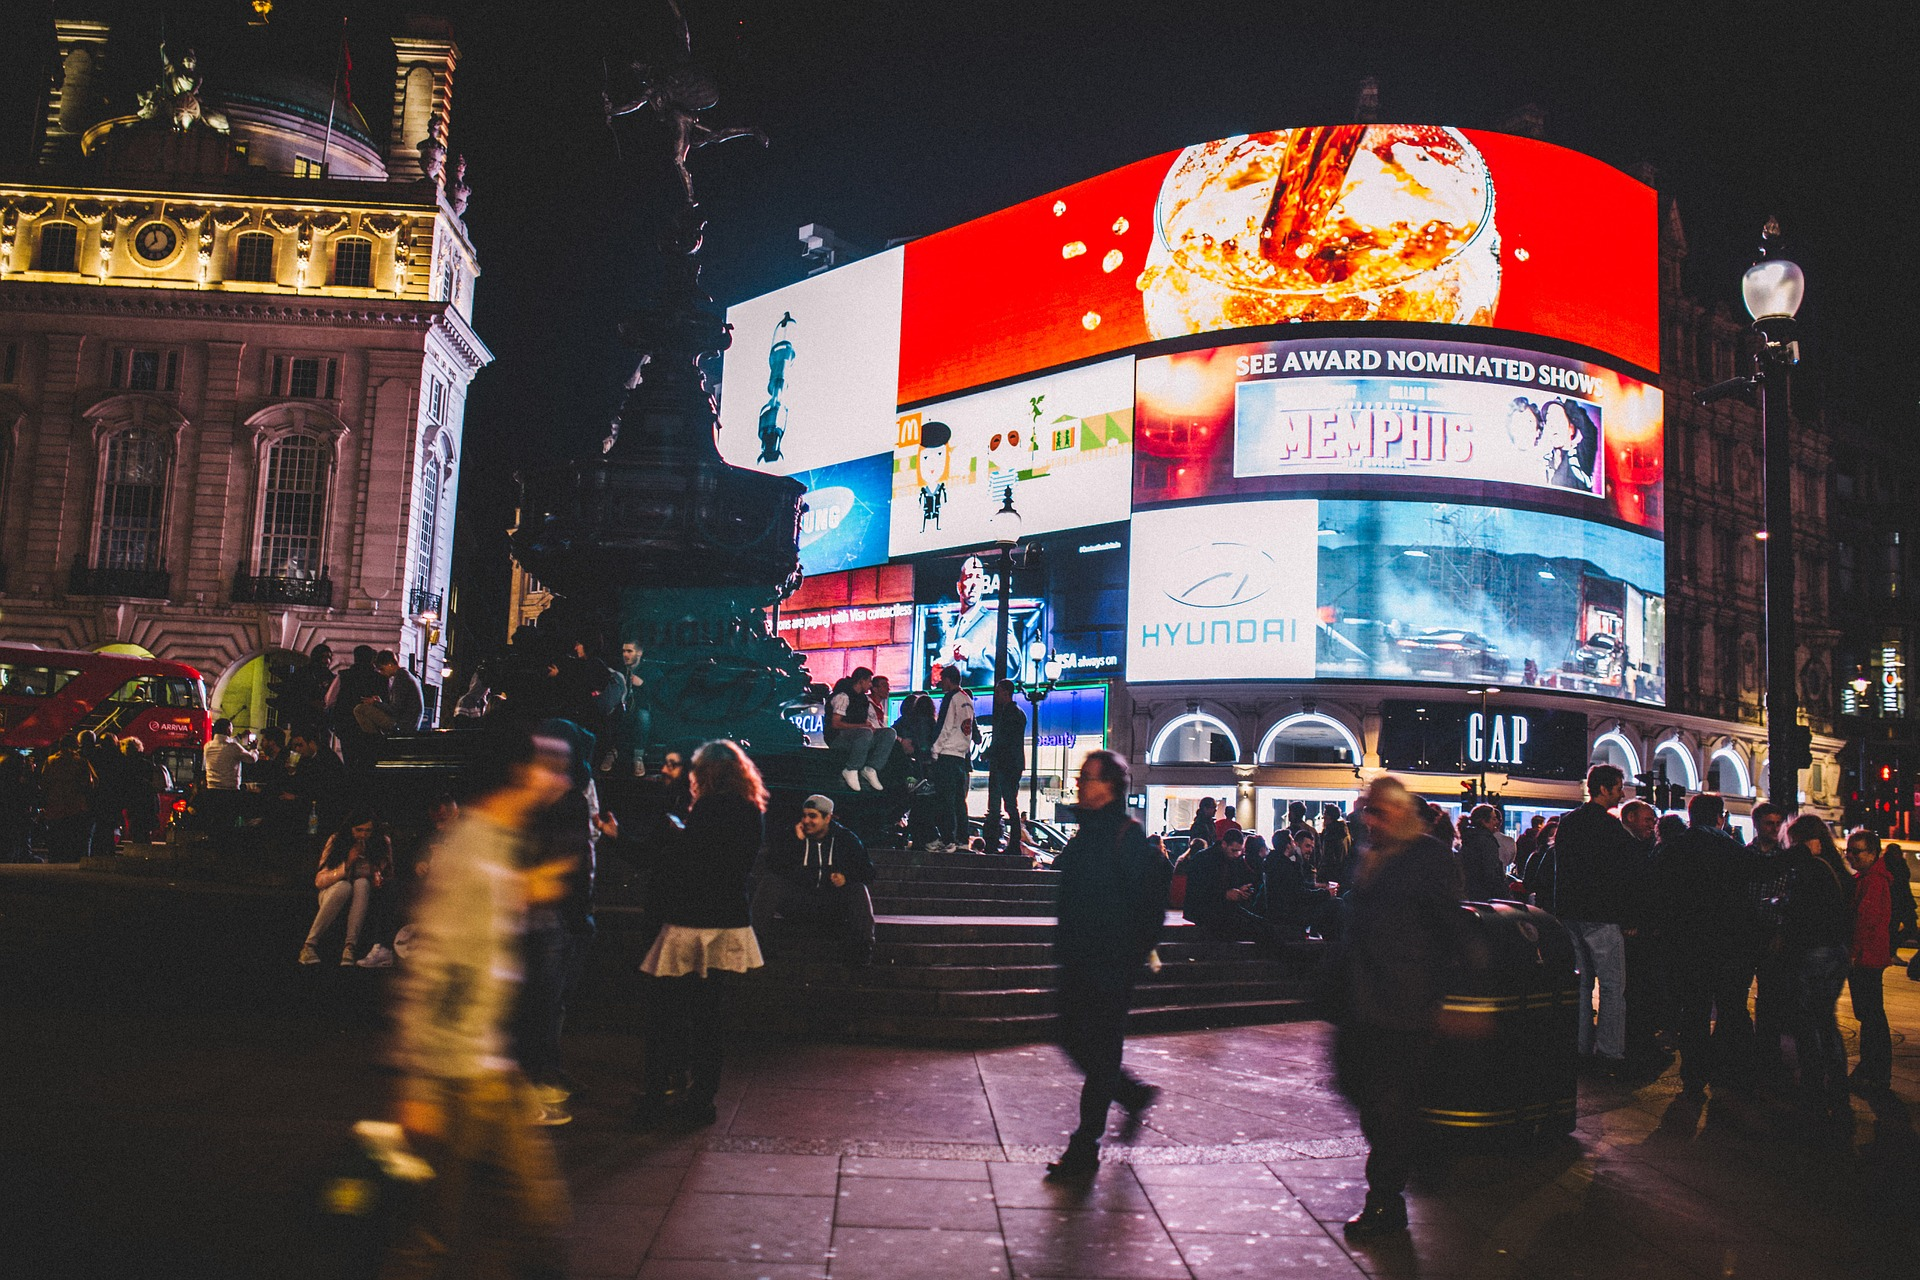 piccadilly-circus-926802_1920.jpg